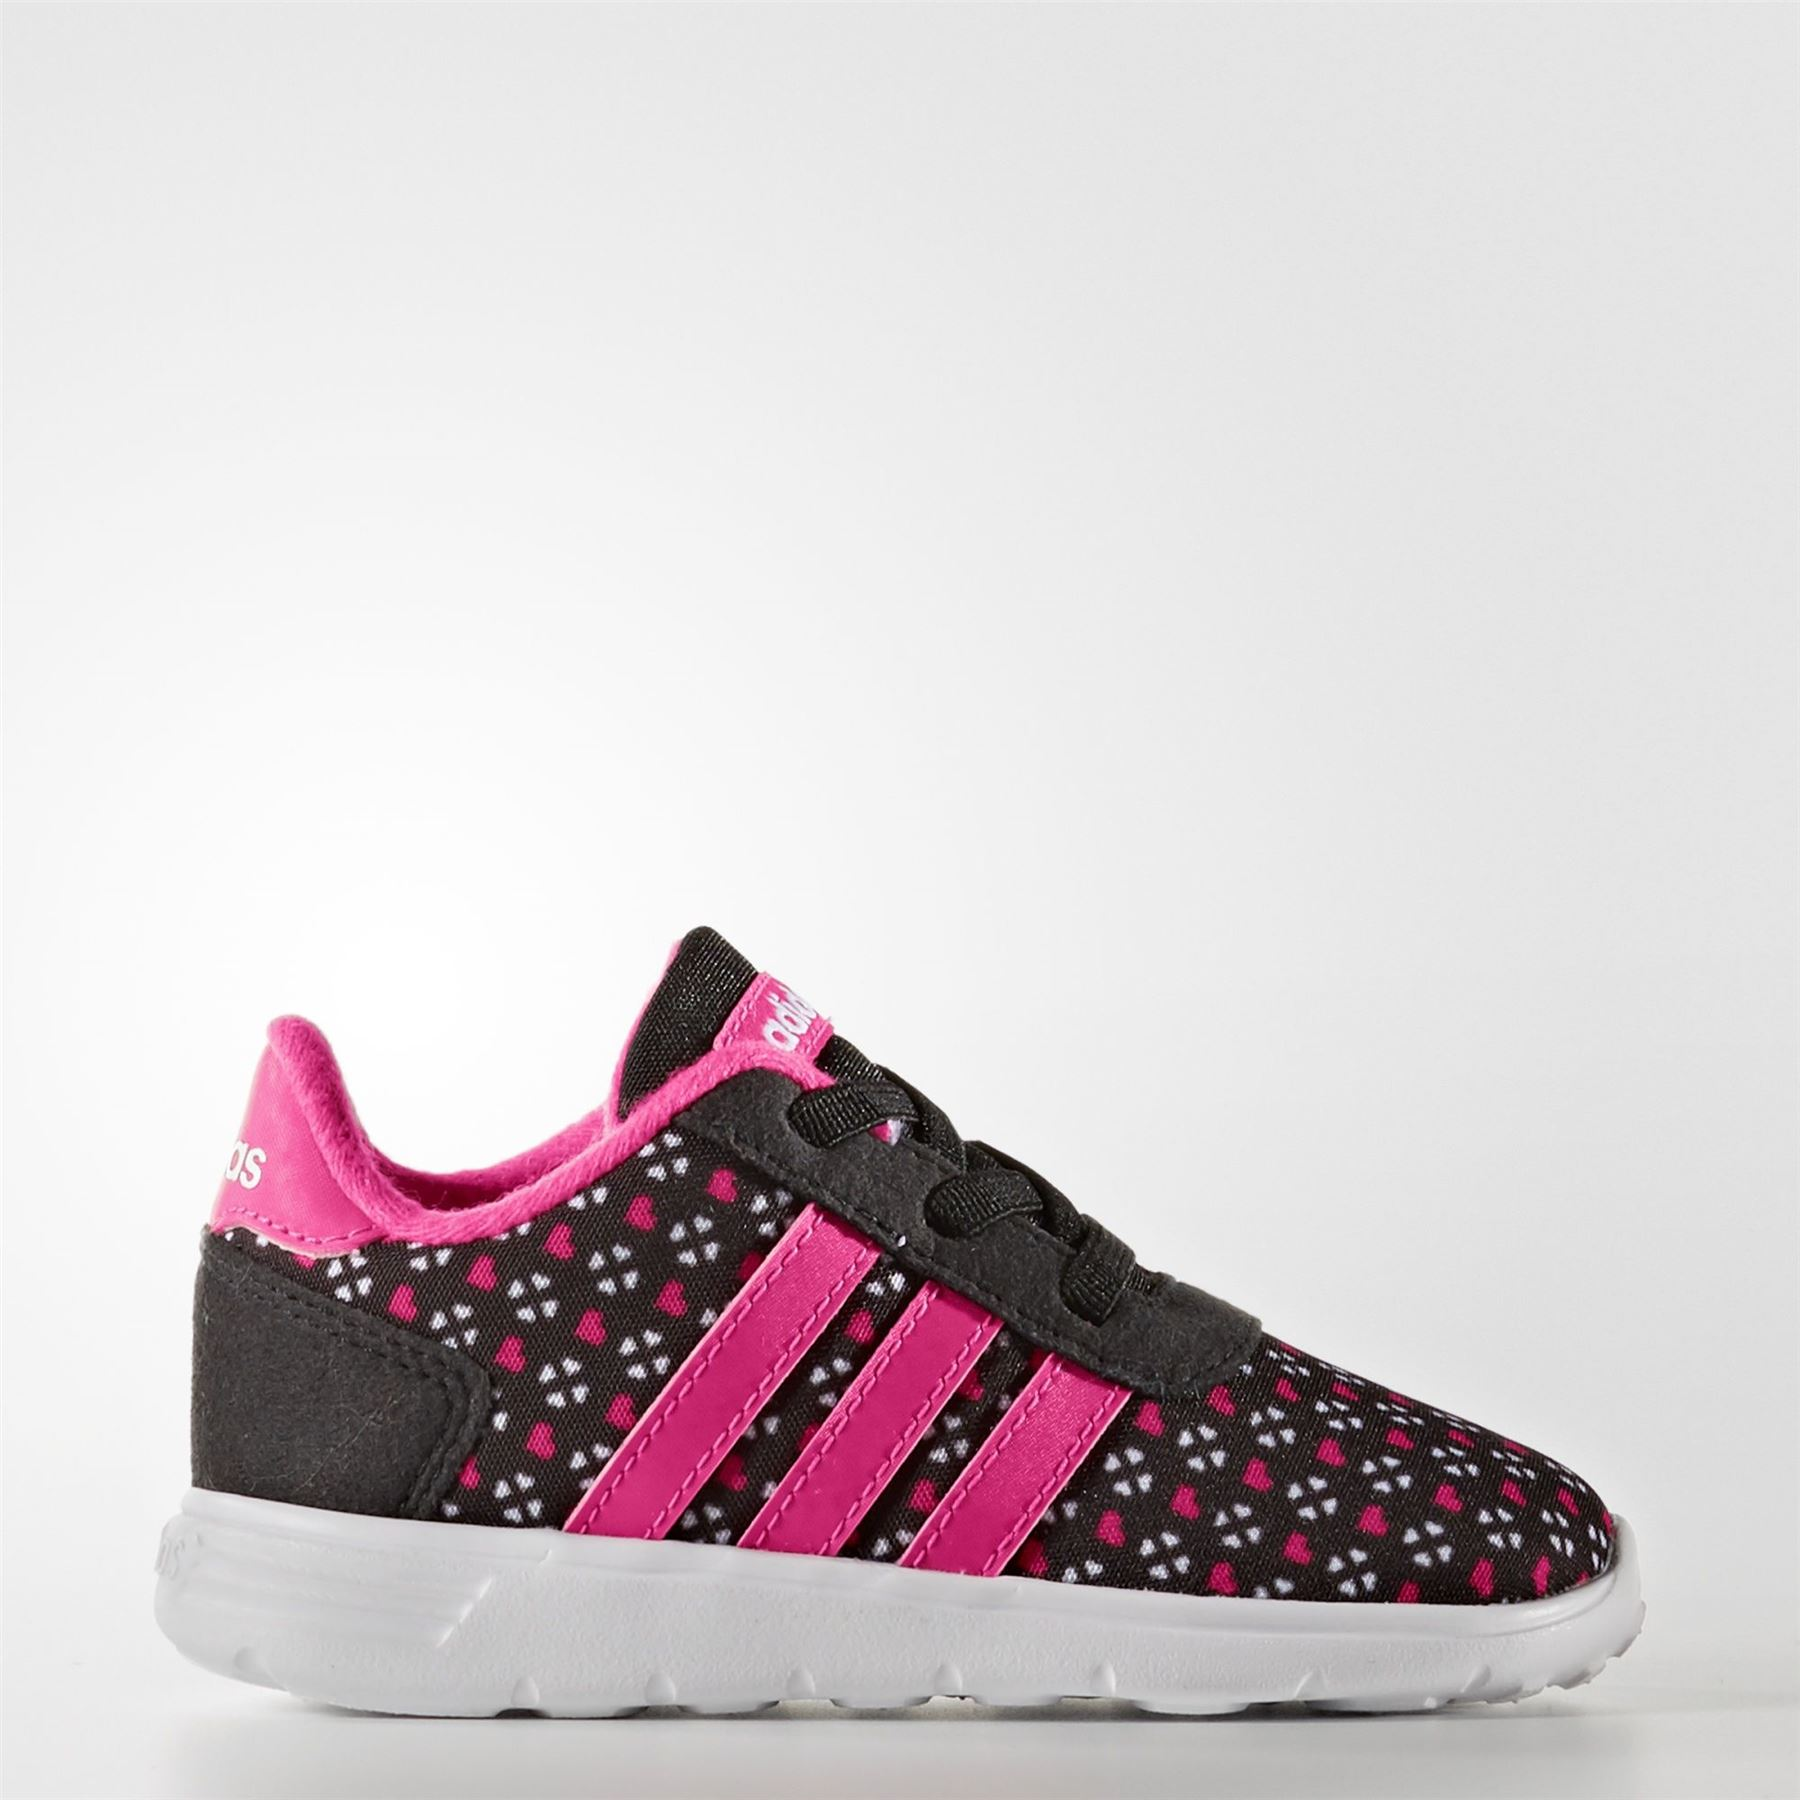 ADIDAS-LITTLE-RACER-INFANTS-AW5121-PINK-amp-BLACK-